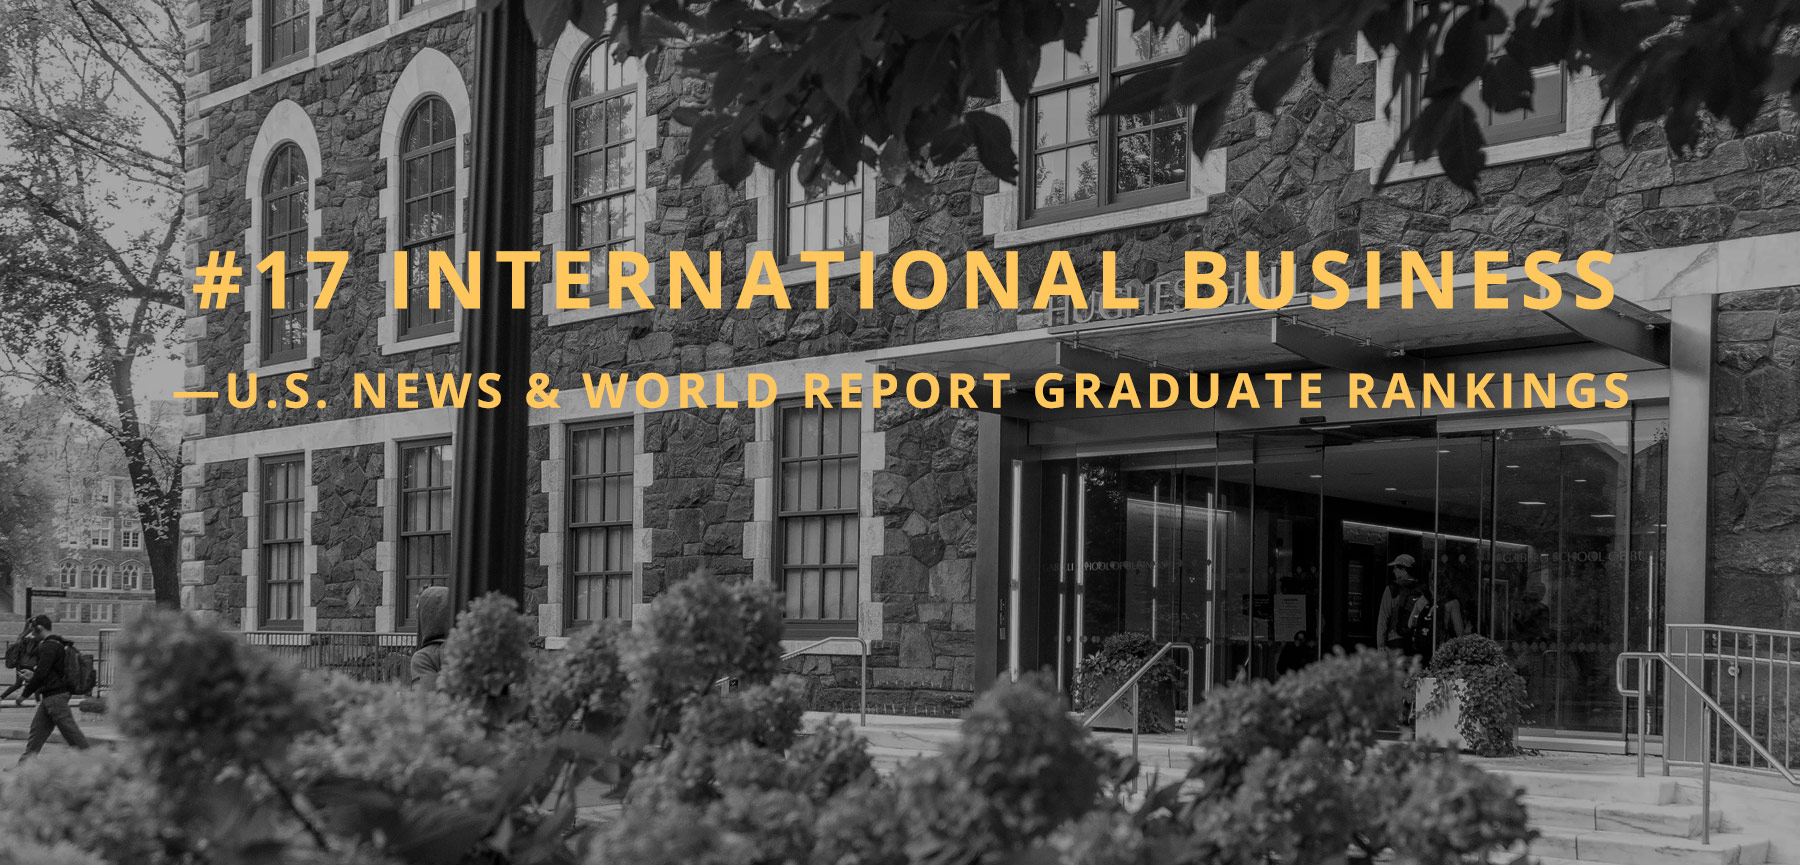 #17 international business